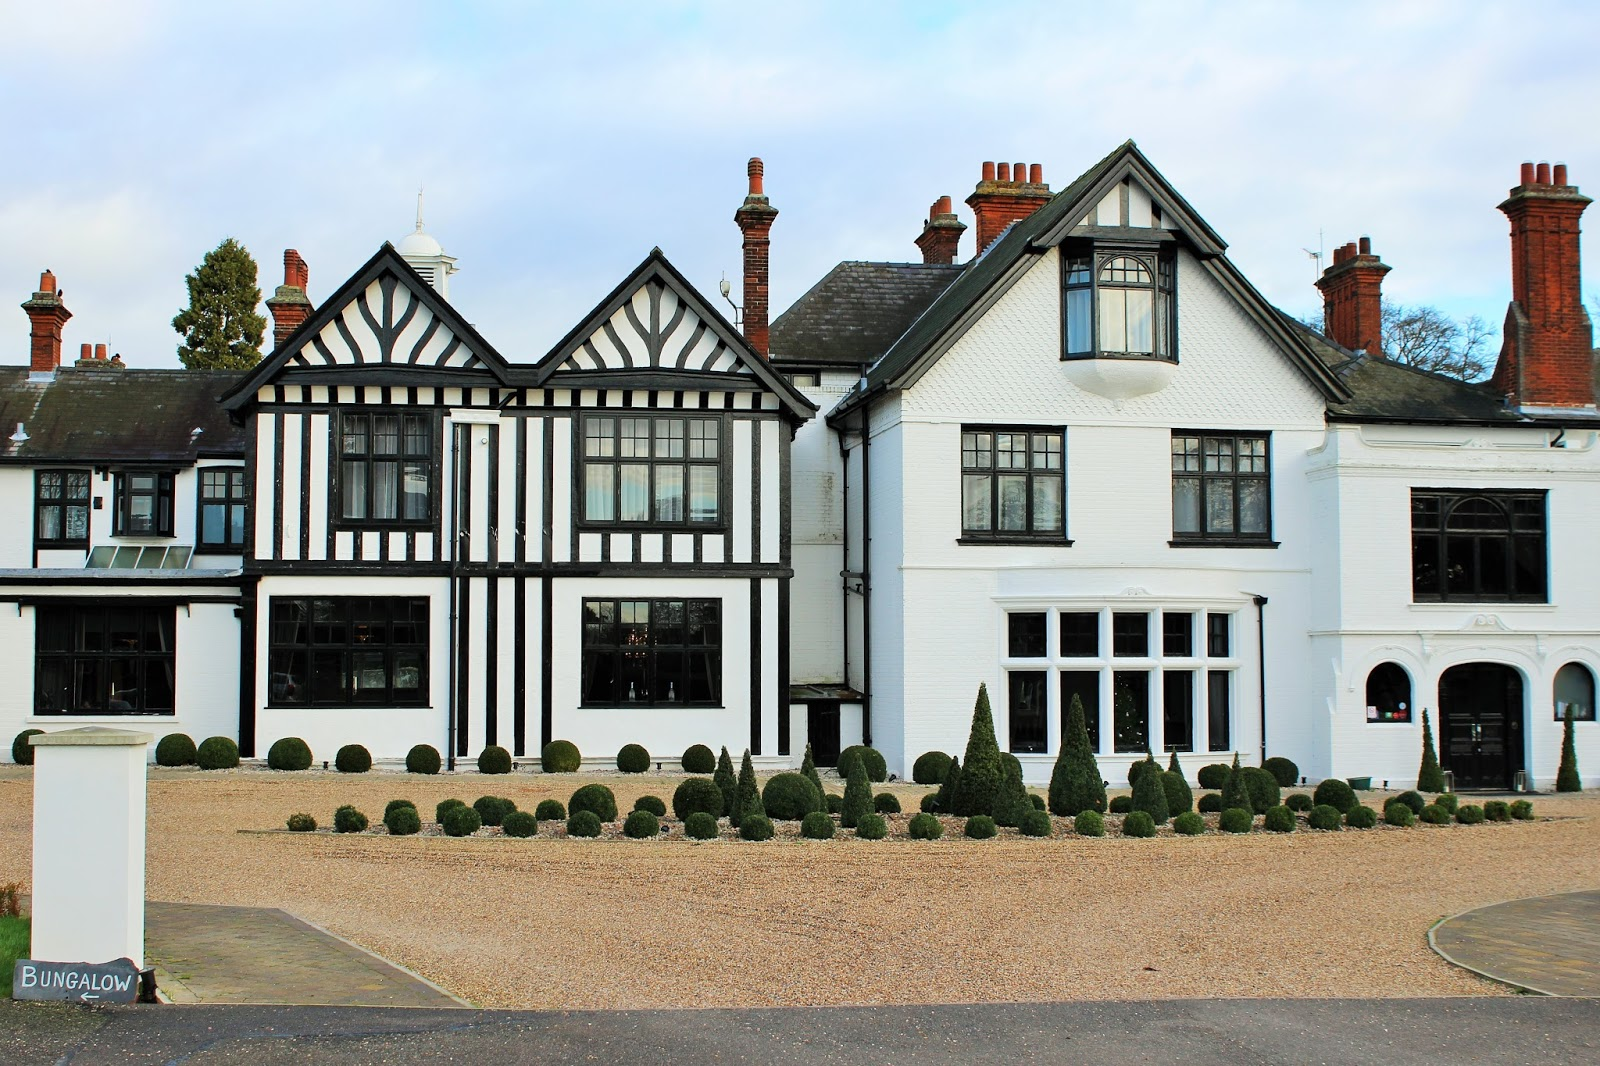 Paddocks House Hotel, Newmarket, Cambridgeshire